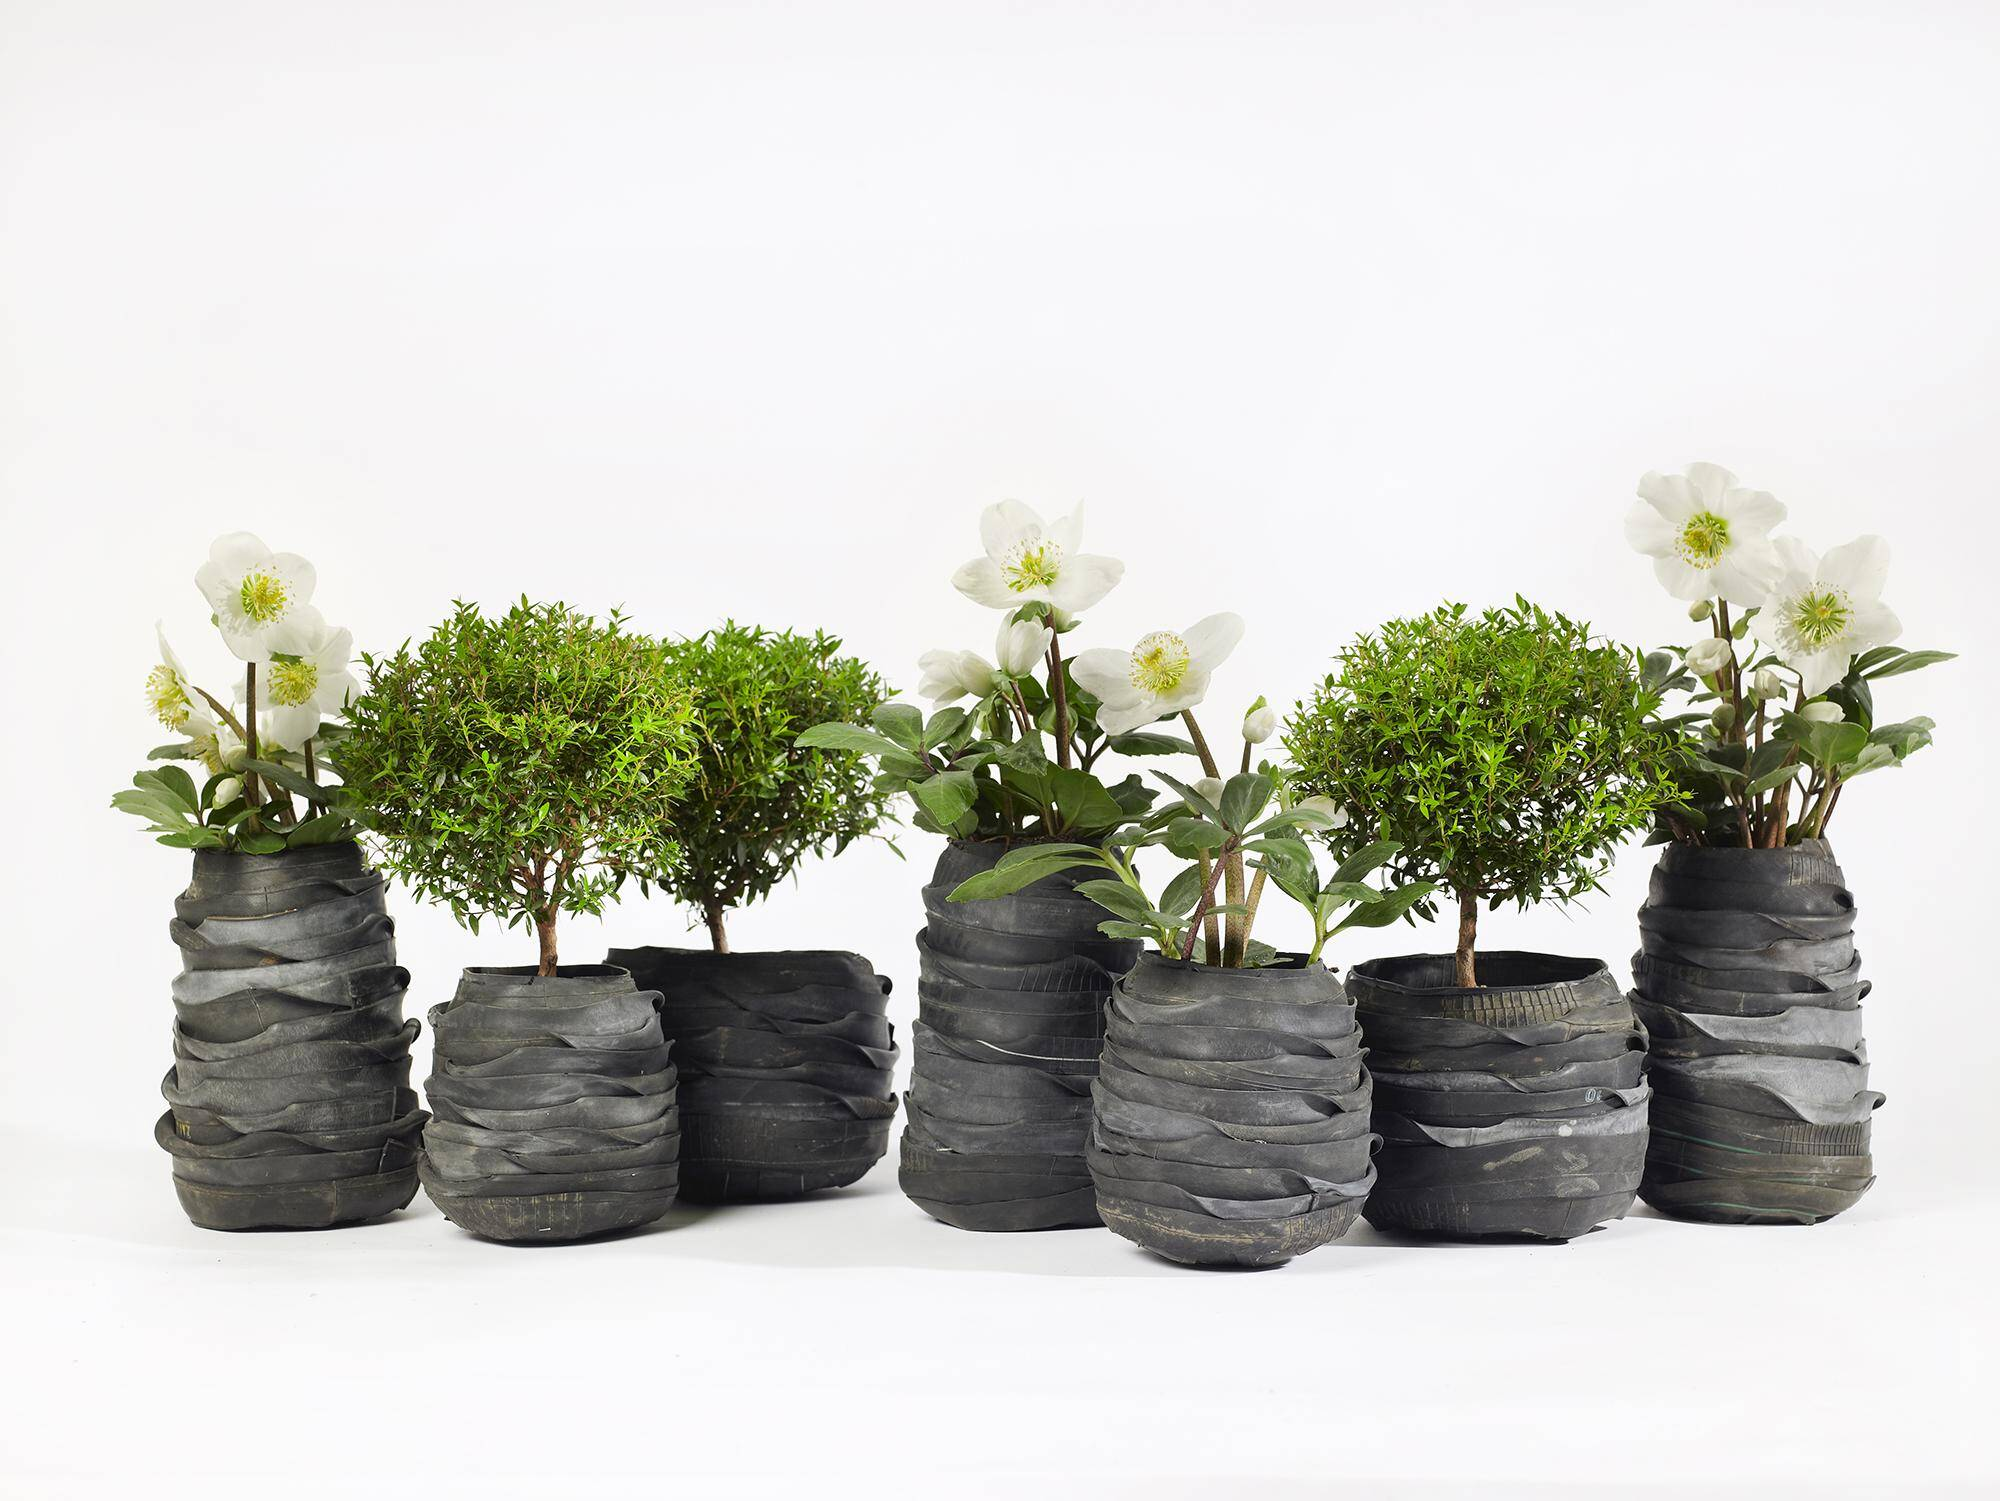 Flower pots can transform any garden or interior for Flower pots design images